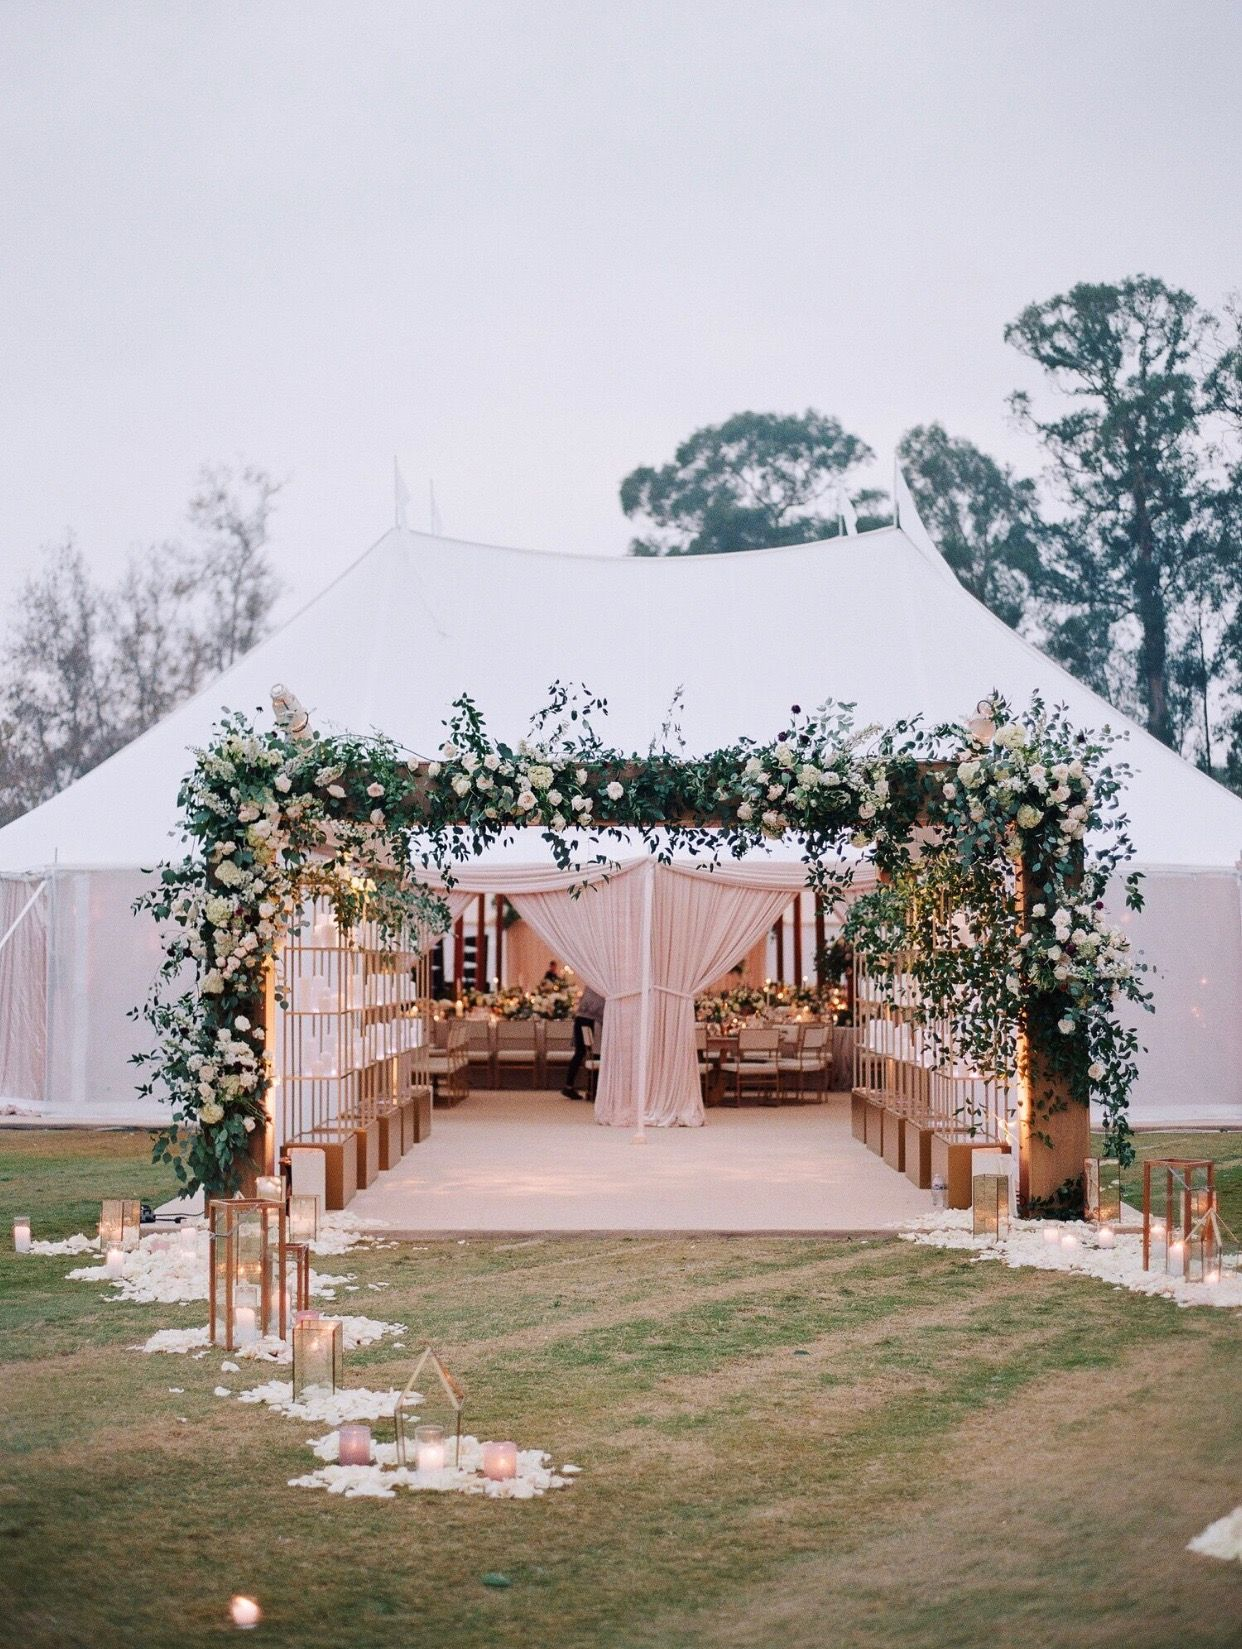 Home in 2019 | ARK - Real Events | Marquee wedding, Wedding